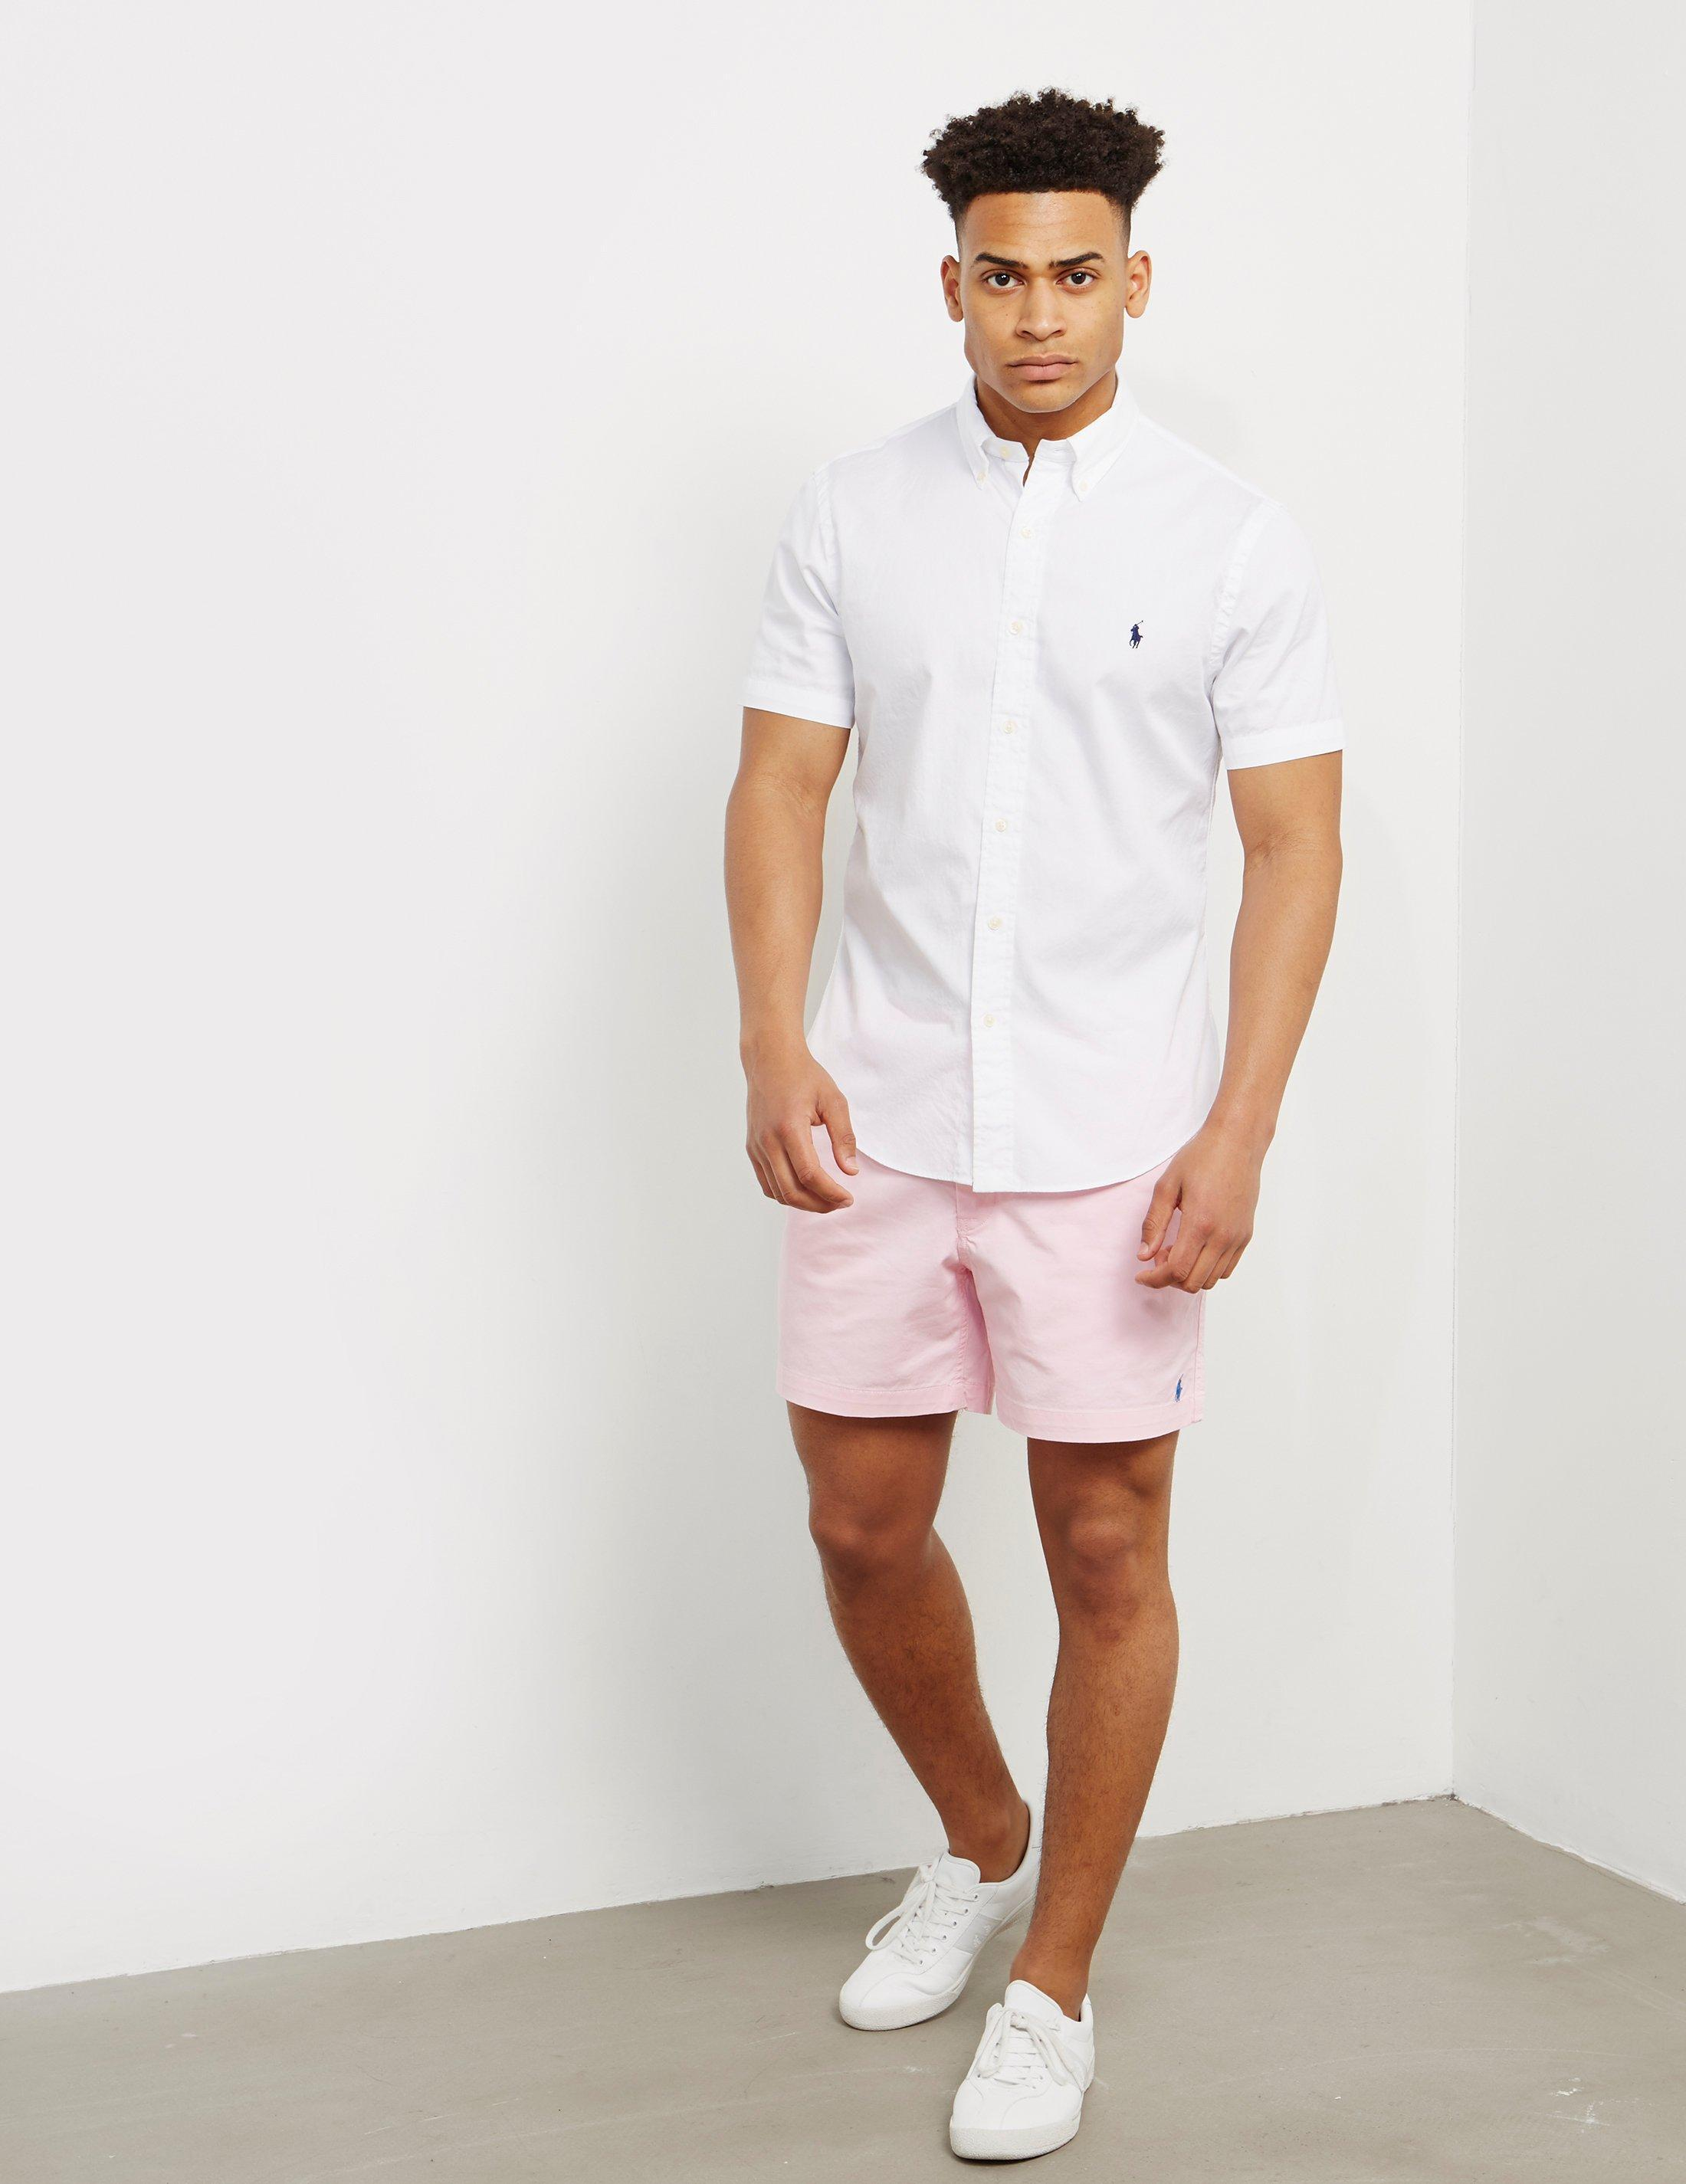 0b0875a23 germany lyst polo ralph lauren mens preppy shorts pink in pink for men  b466e a1c59